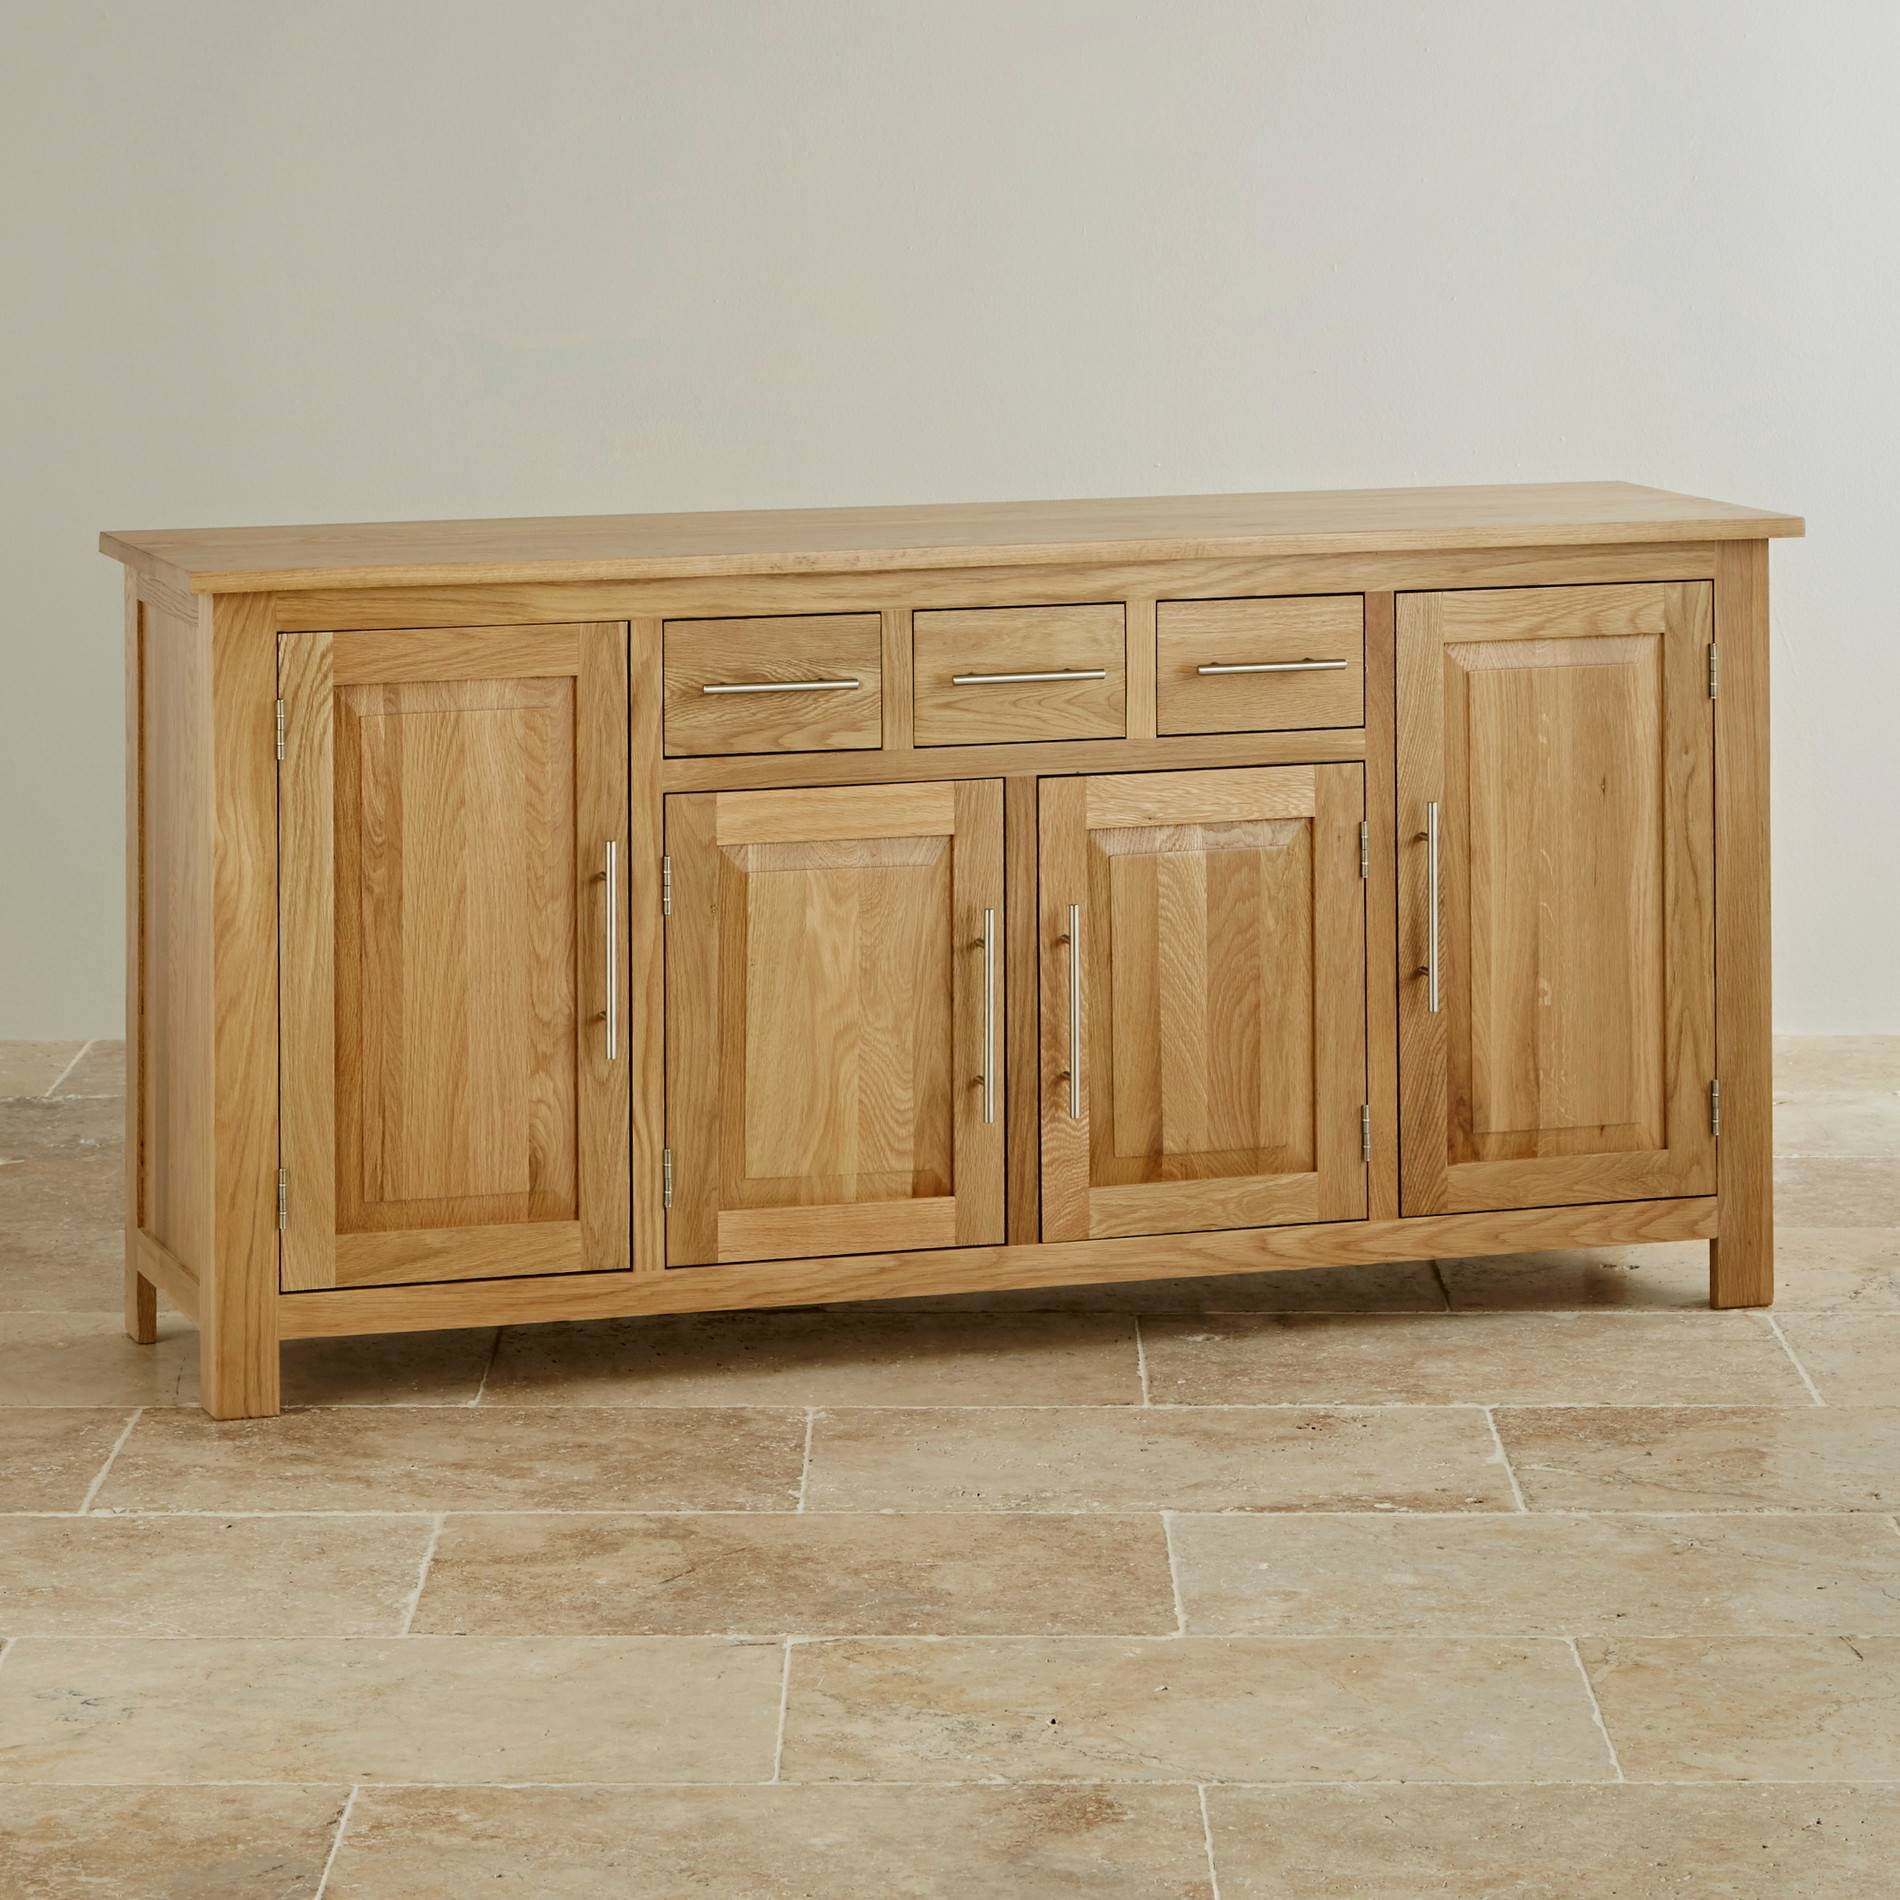 Sideboards | 100% Solid Hardwood | Oak Furniture Land intended for Real Wood Sideboards (Image 11 of 30)